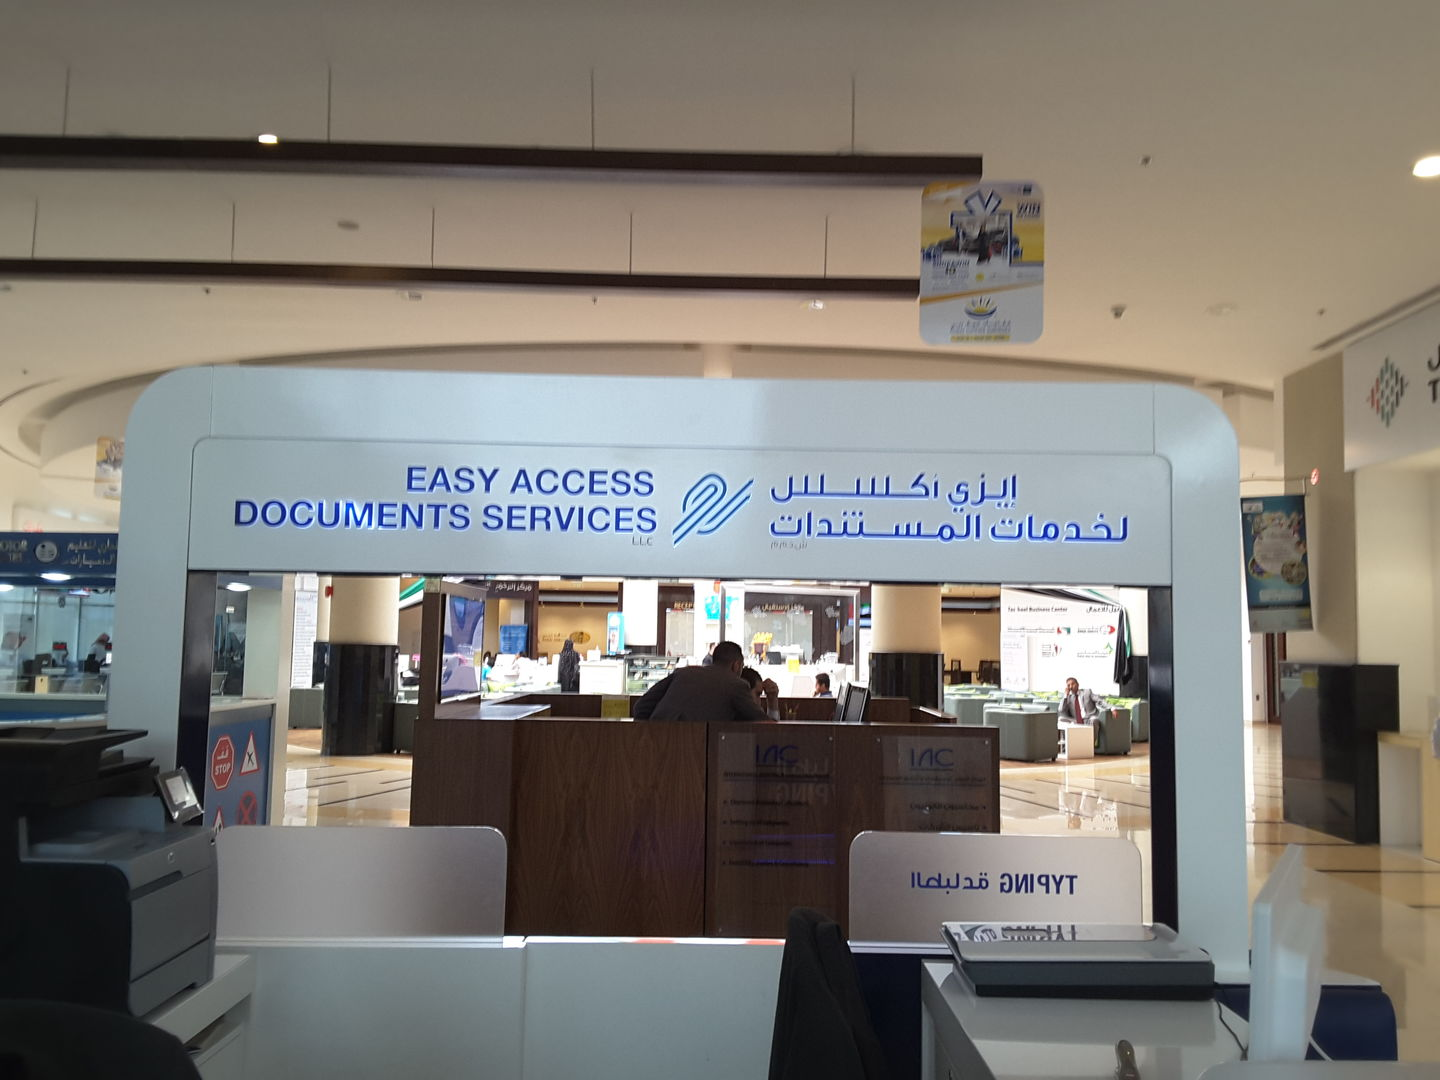 HiDubai-business-easy-access-documents-services-government-public-services-printing-typing-services-al-barsha-2-dubai-2